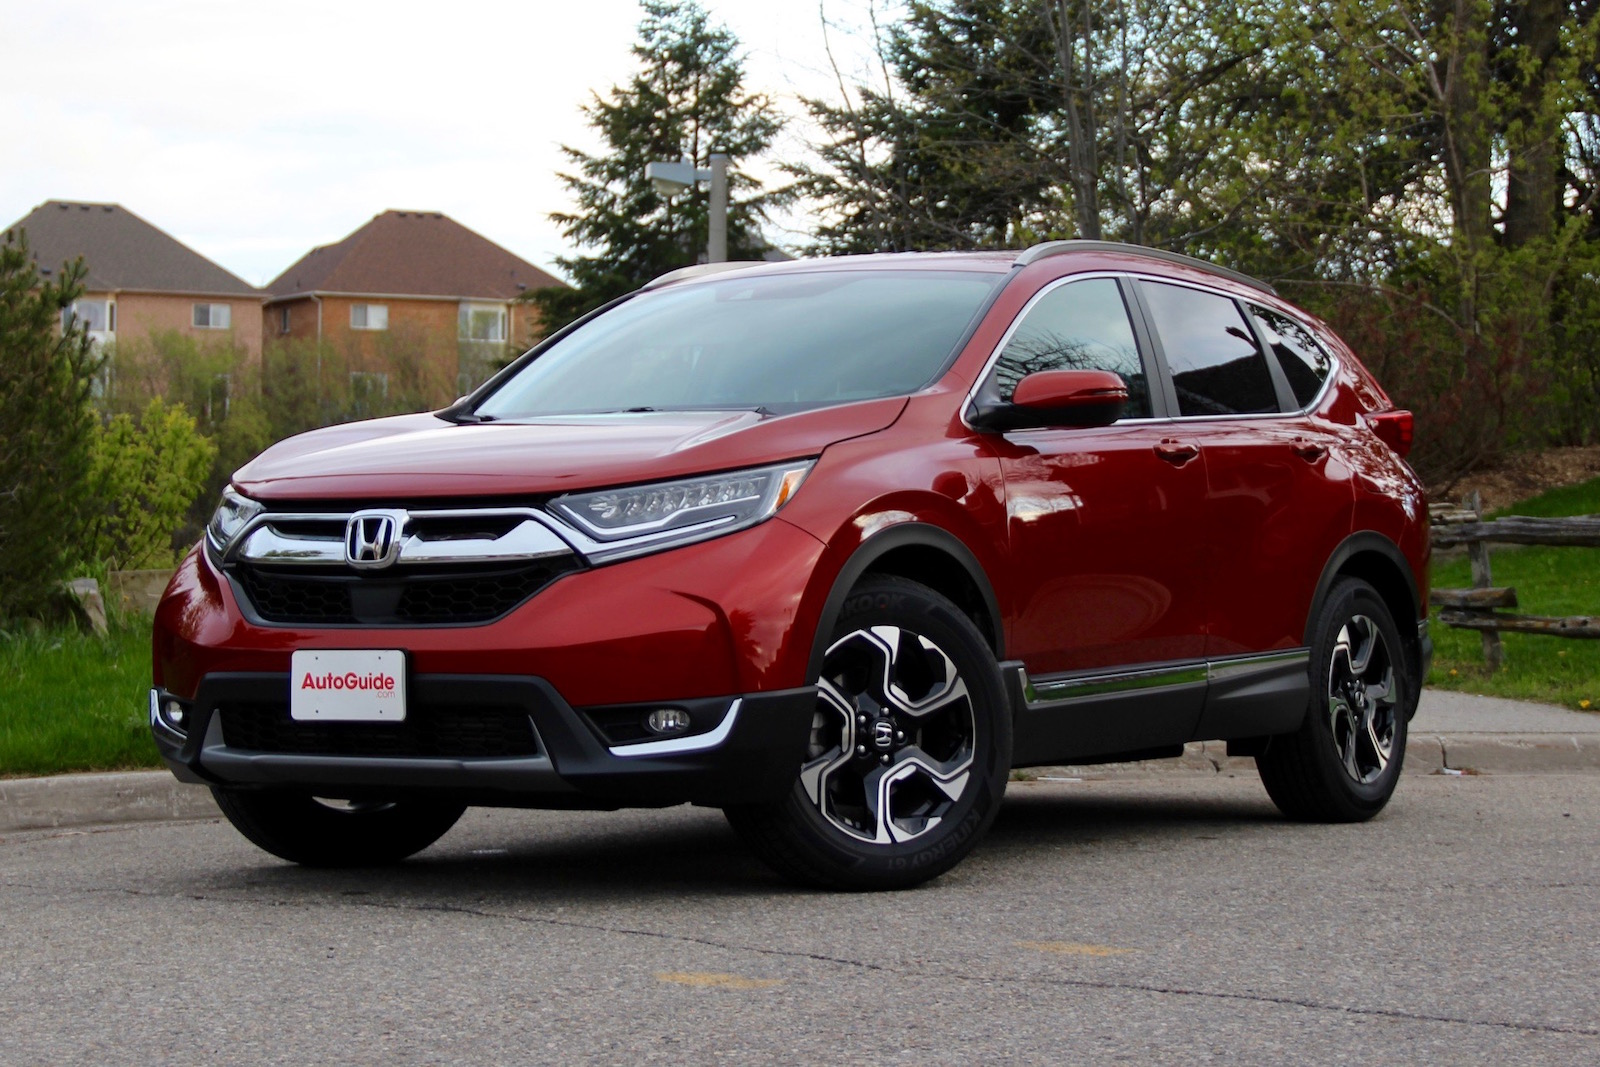 New Honda Accord 2018 >> 2017 Honda CR-V Long-Term Test Update: Road Trip Edition - AutoGuide.com